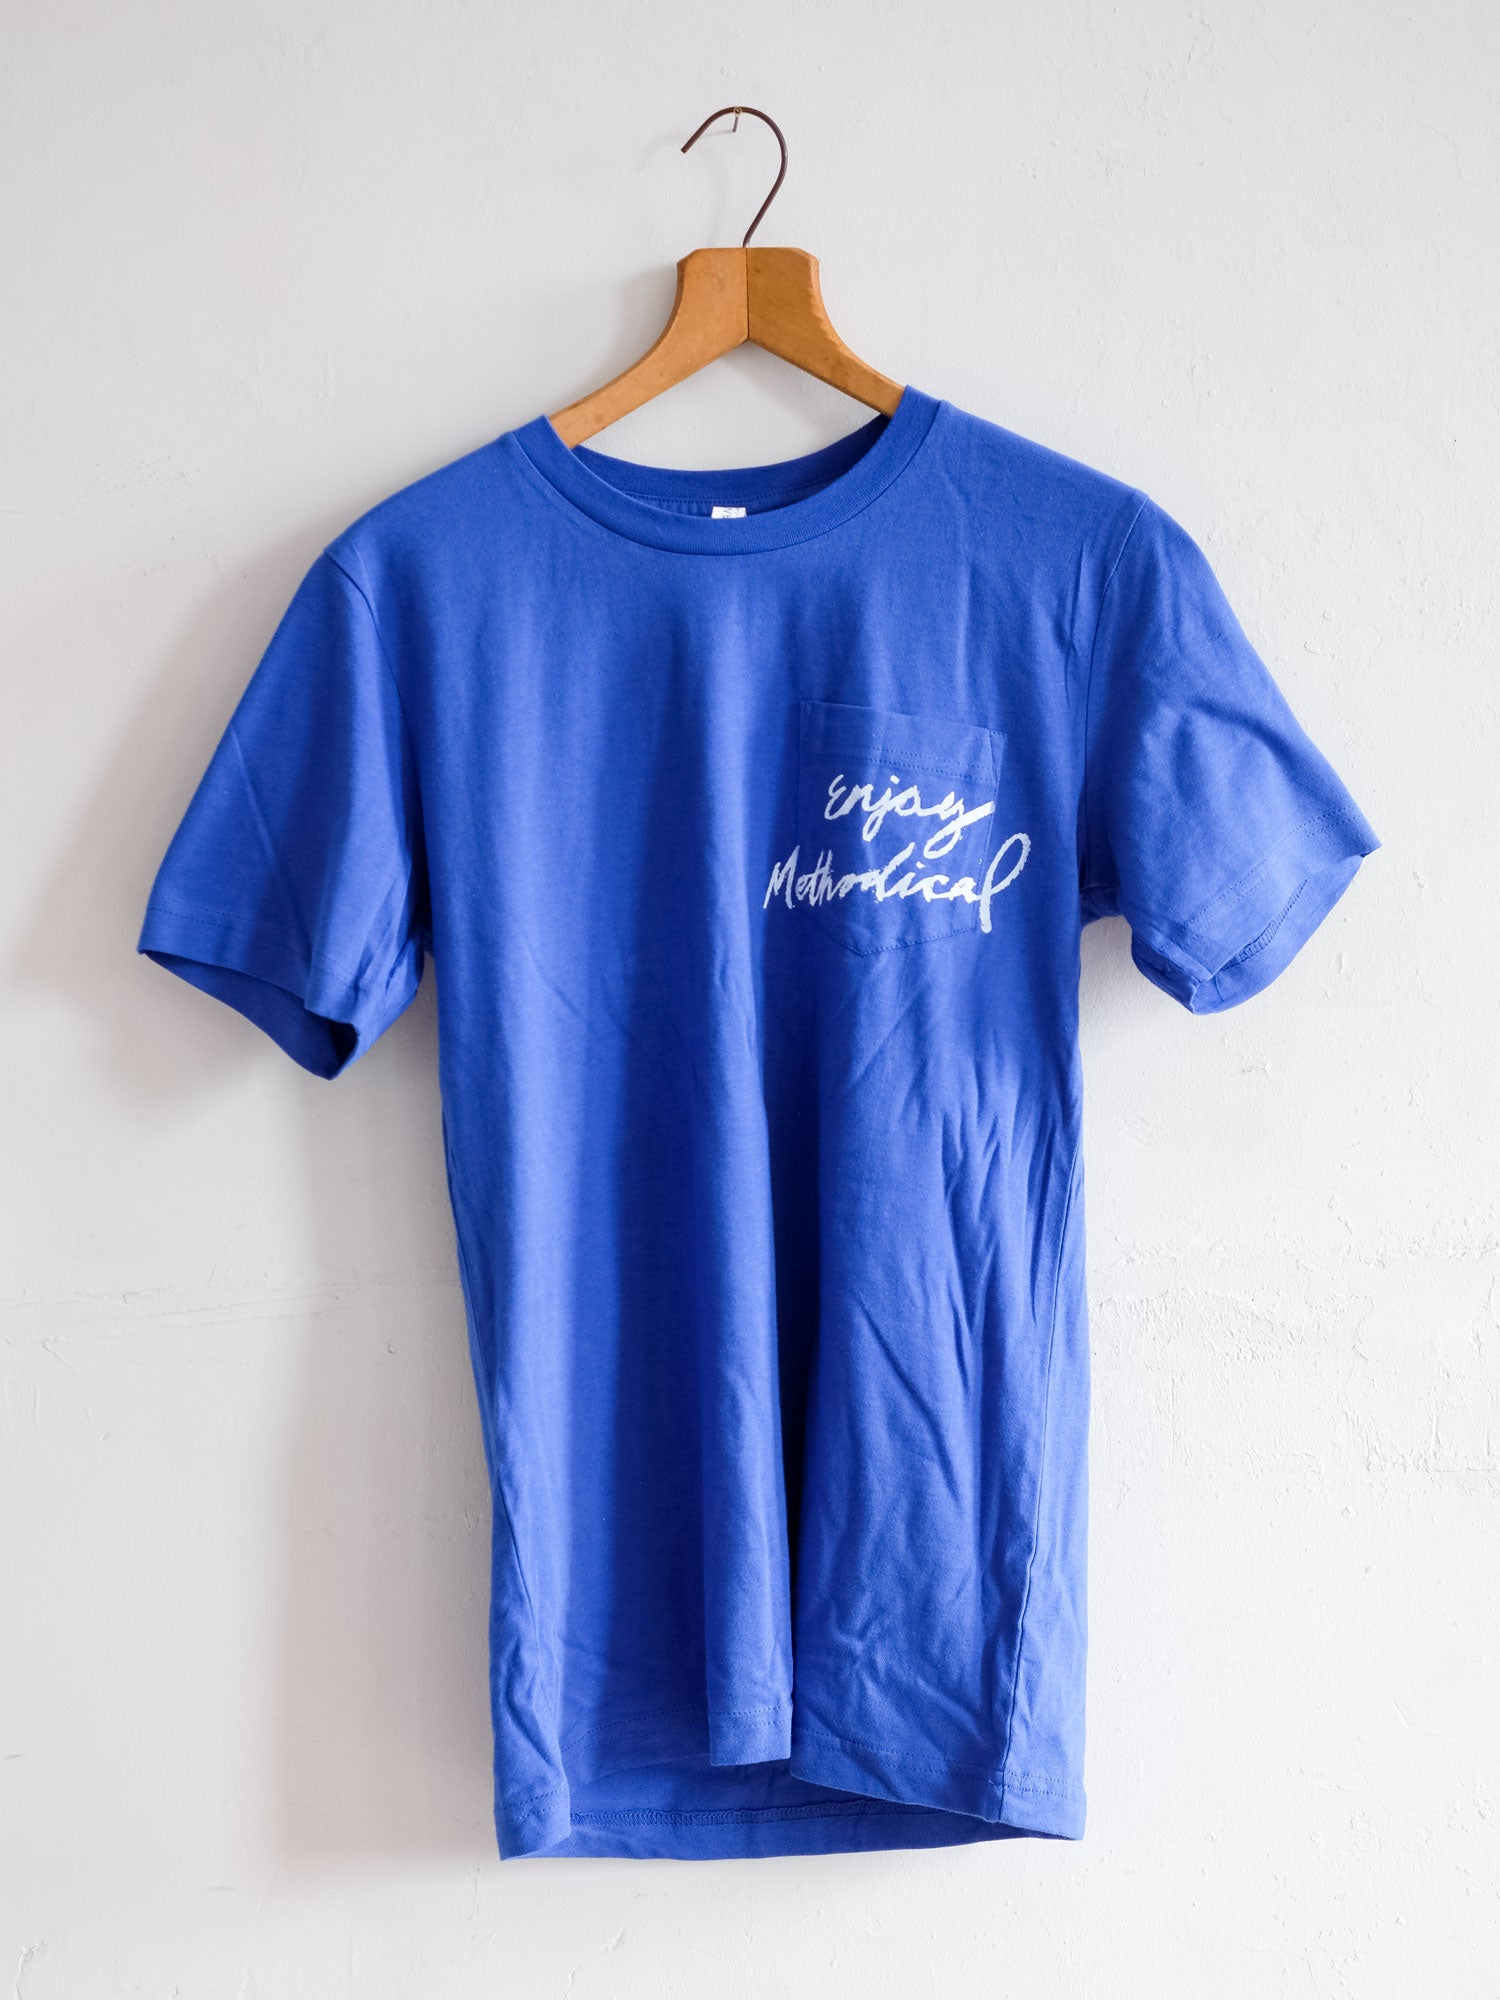 Enjoy T-Shirt in Blue